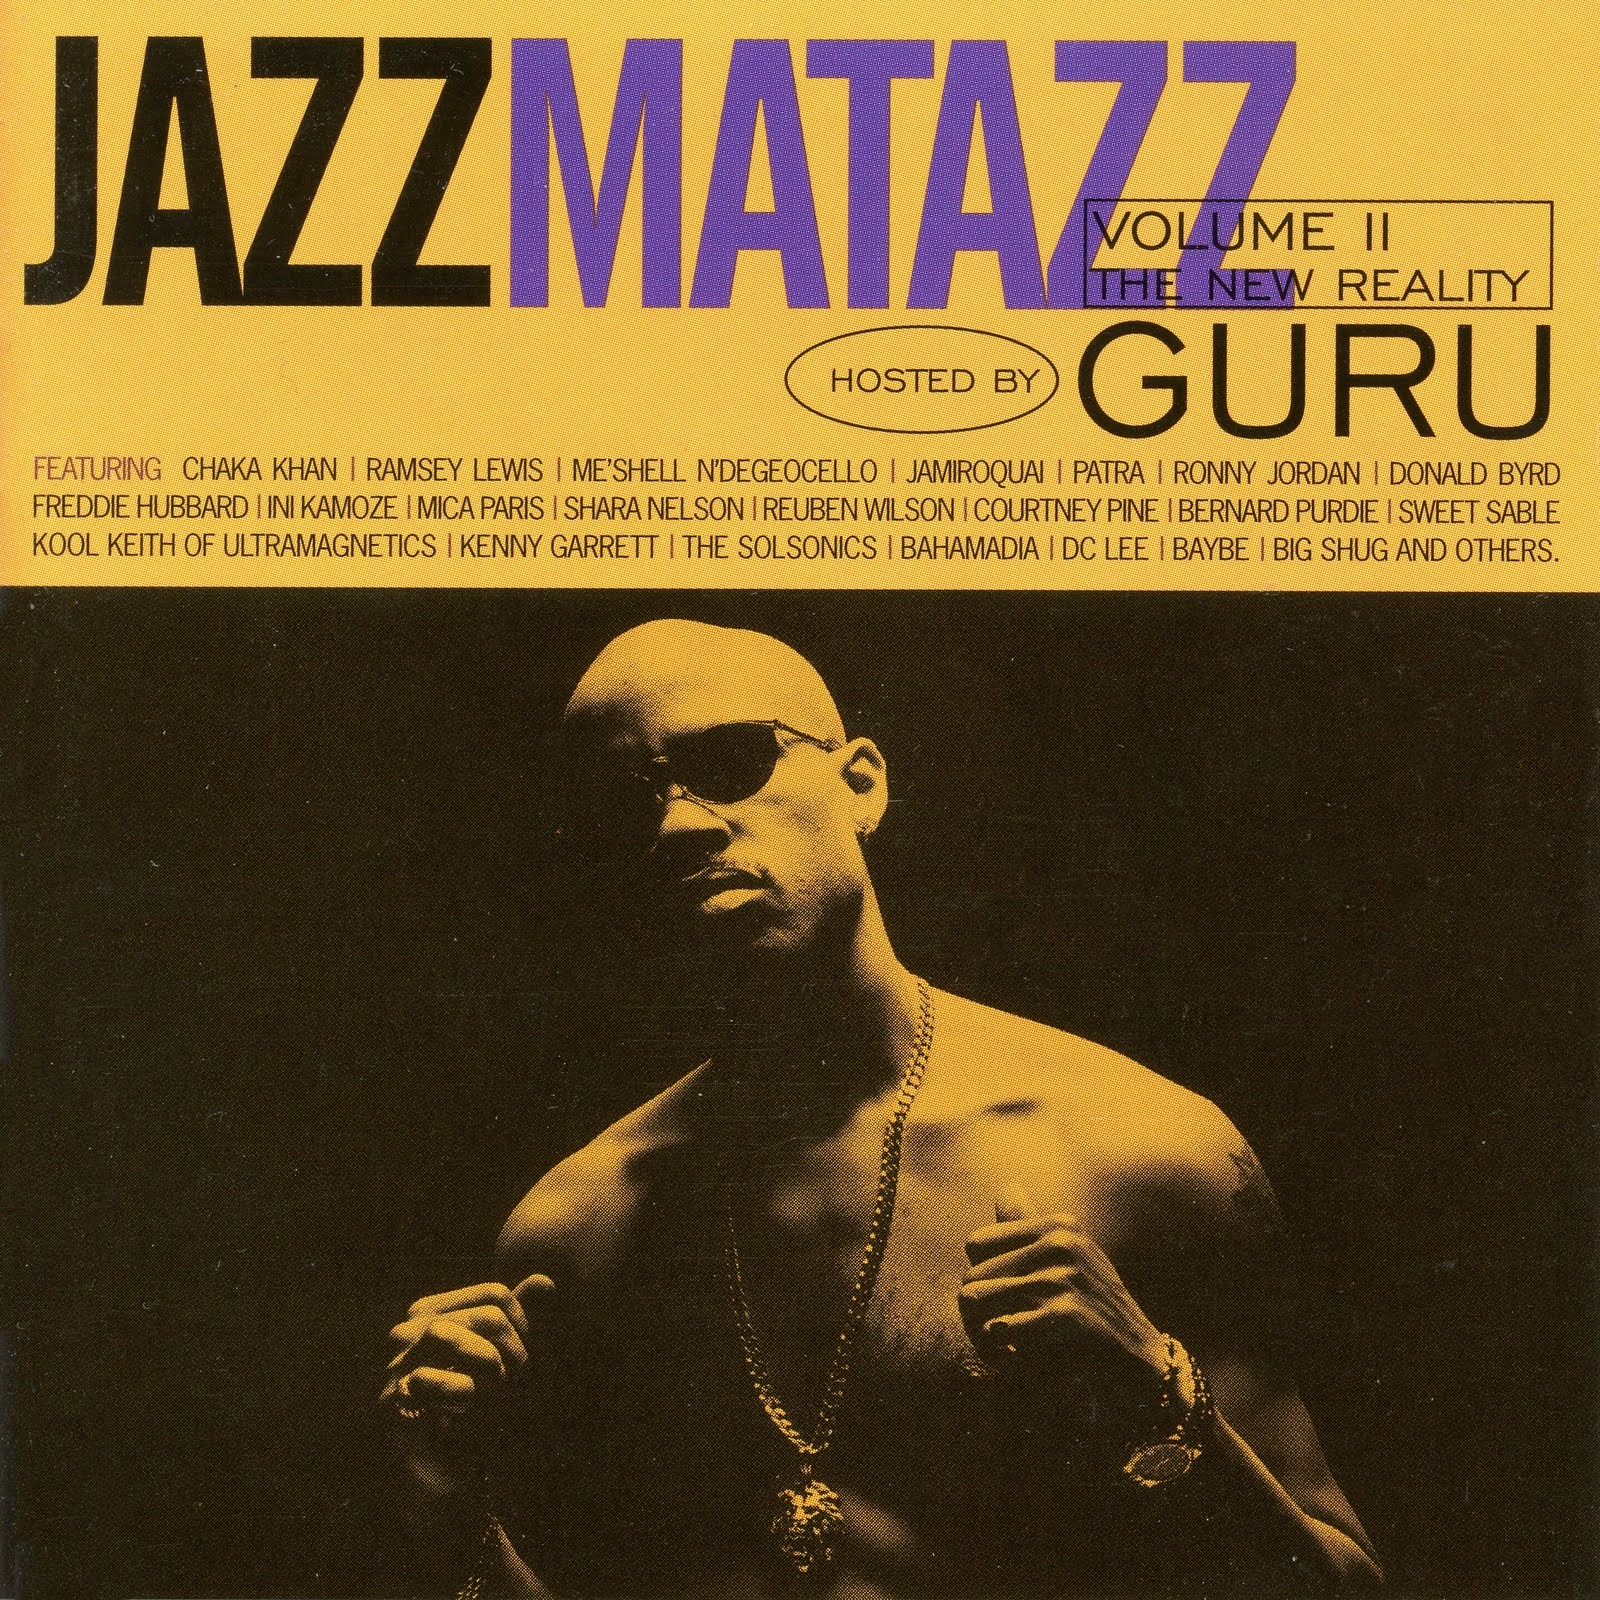 Jazzmataz Voume 2 The New Reality (1995).JPG